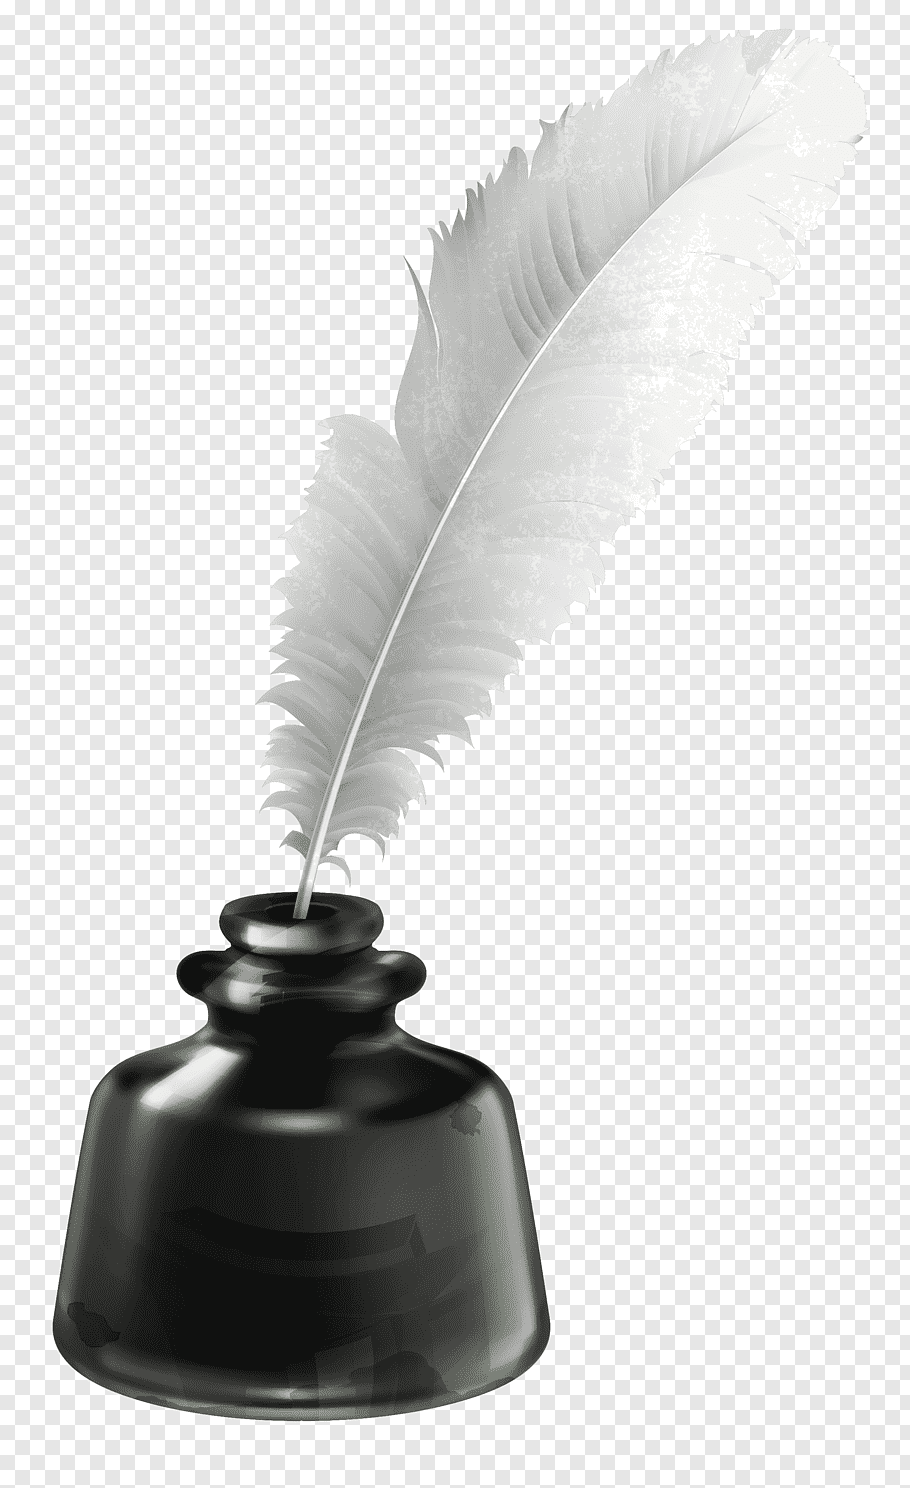 Inkwell Quill, Quill and Ink Pot, white feather pen on black.